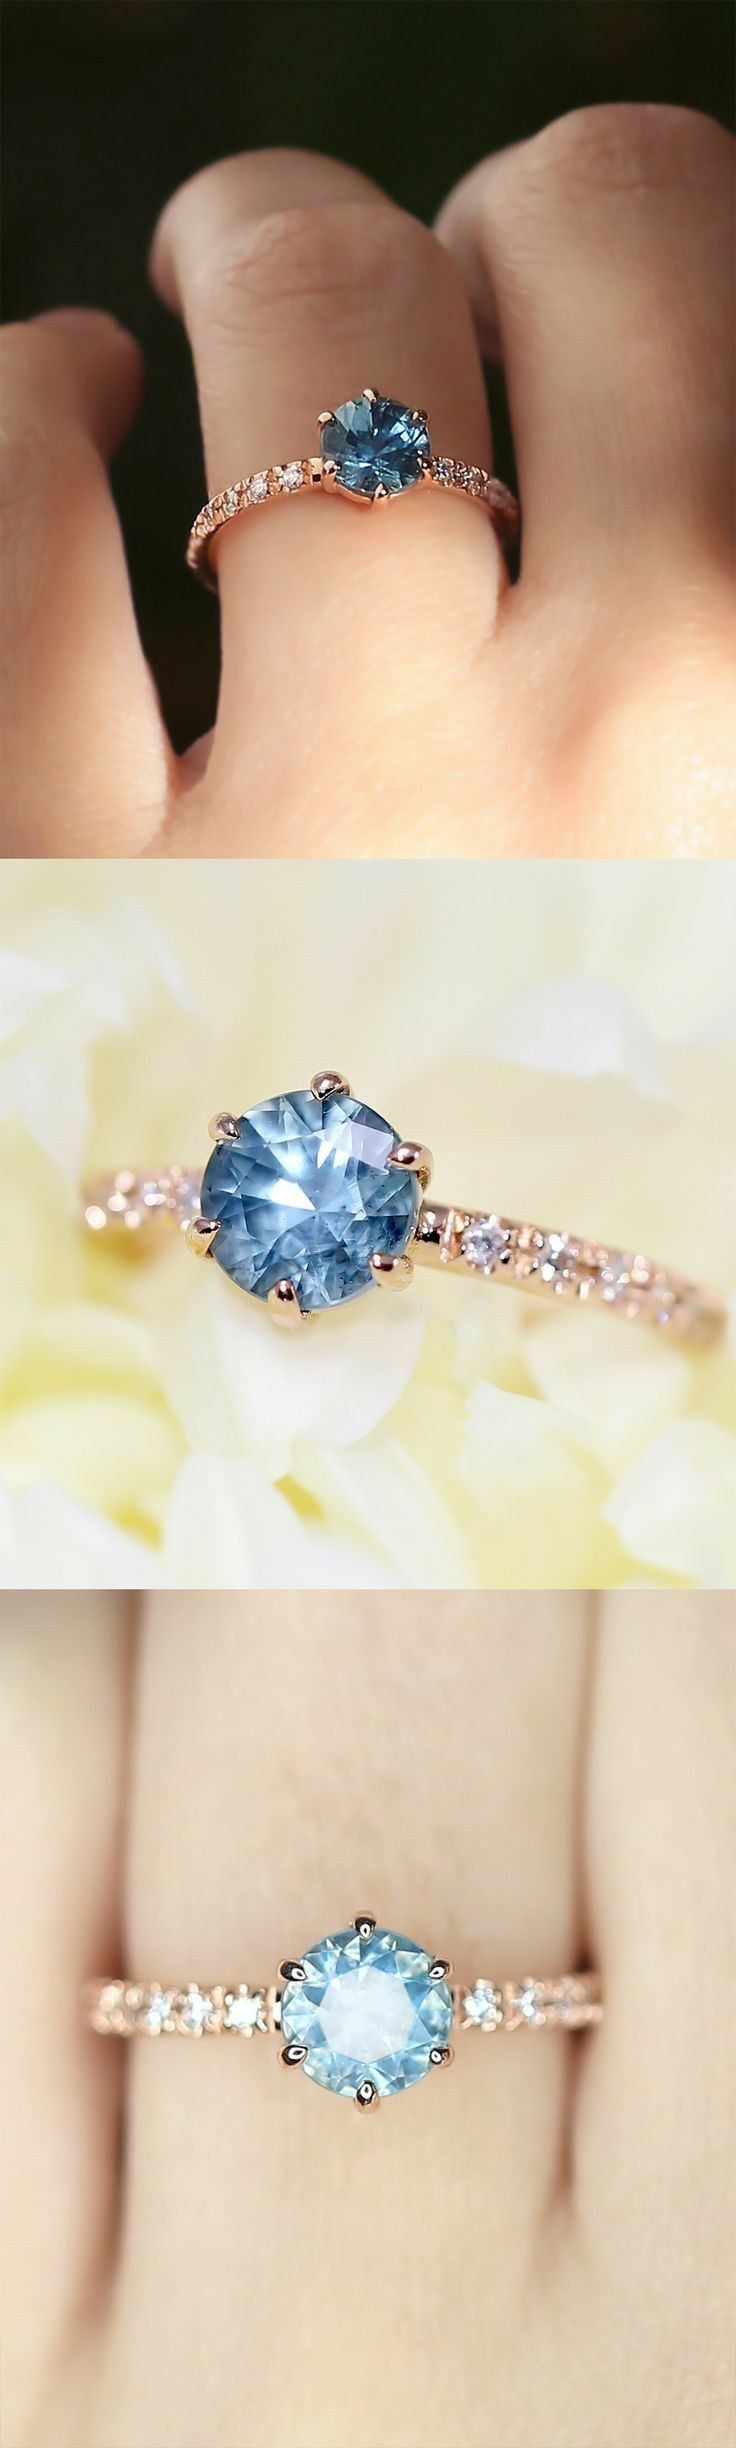 best rings and things images on pinterest